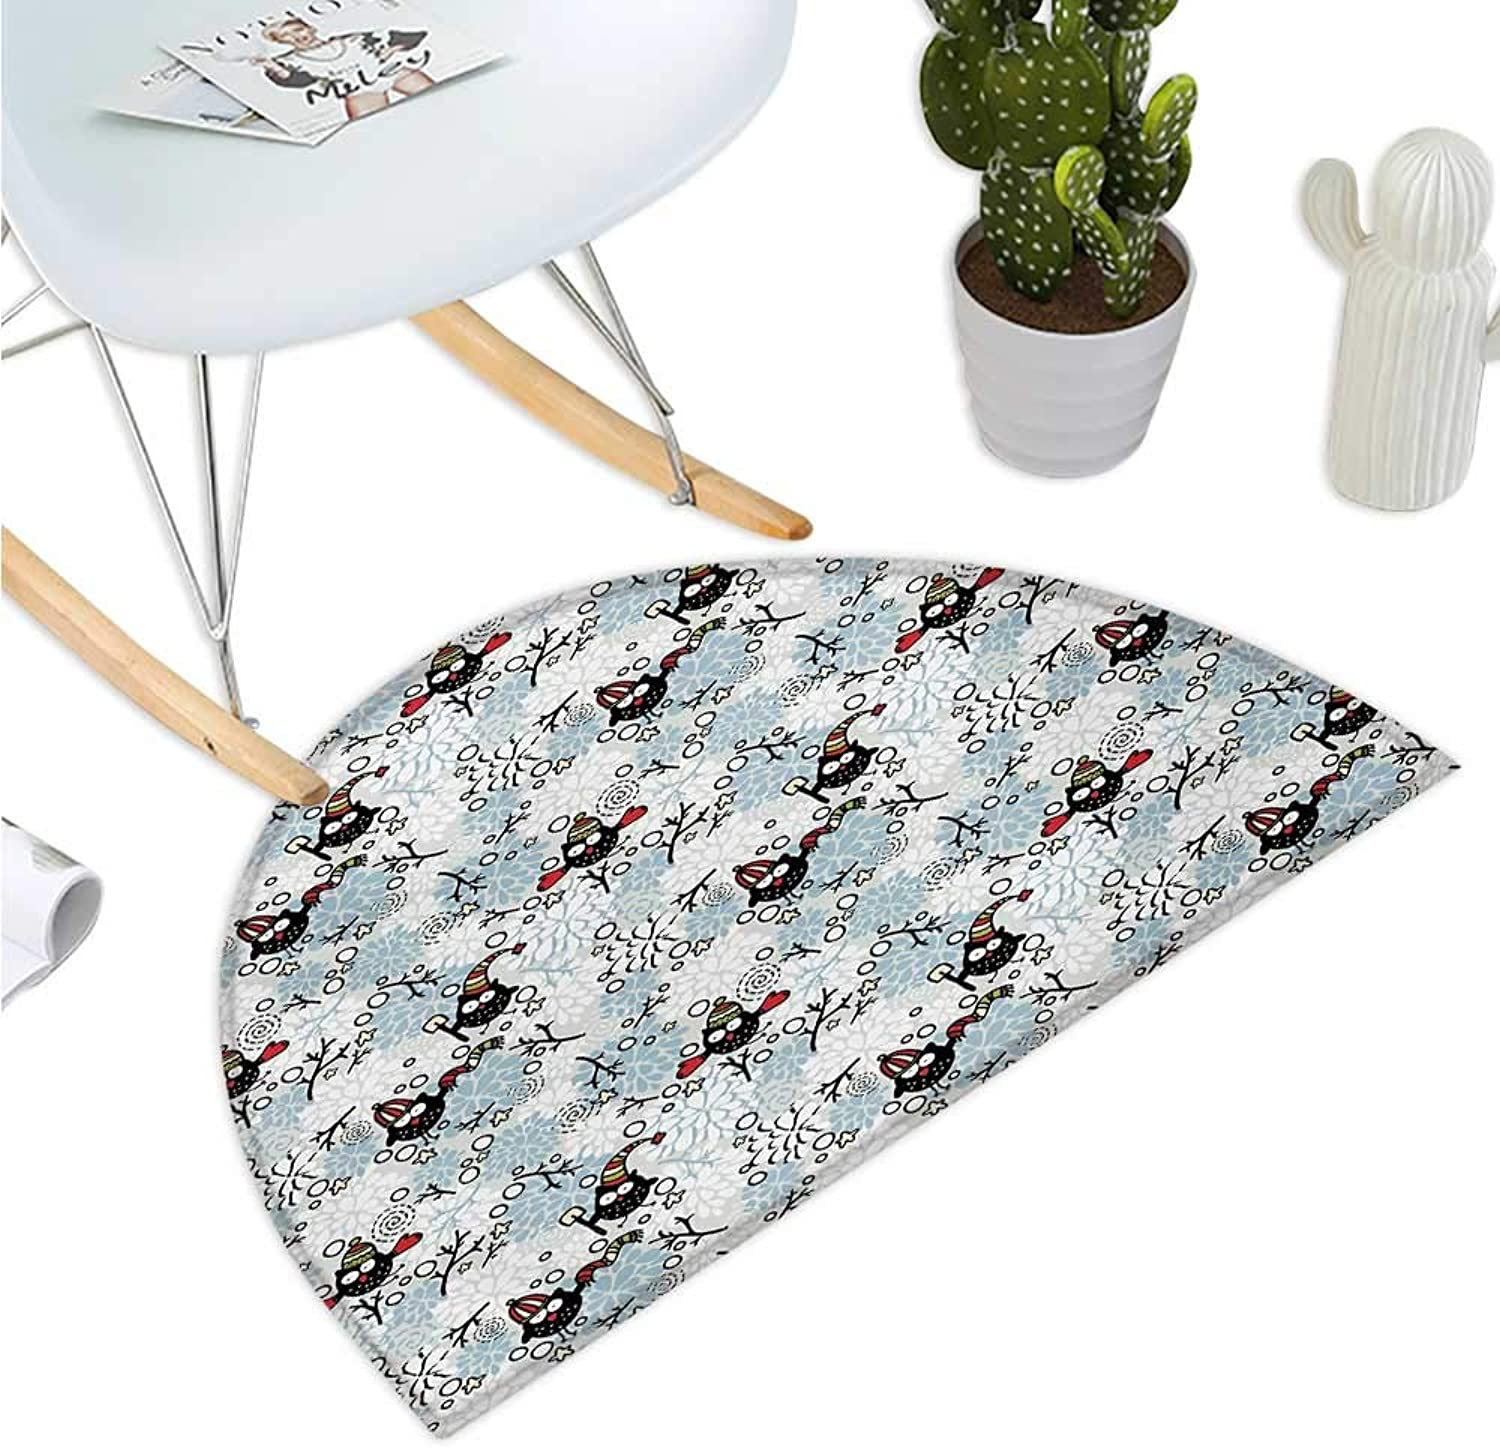 Owls Semicircular Cushion Wintertime Pattern with Cute Characters and Snow Flowers Stars Doodle Style Xmas Theme Entry Door Mat H 43.3  xD 64.9  Multicolor